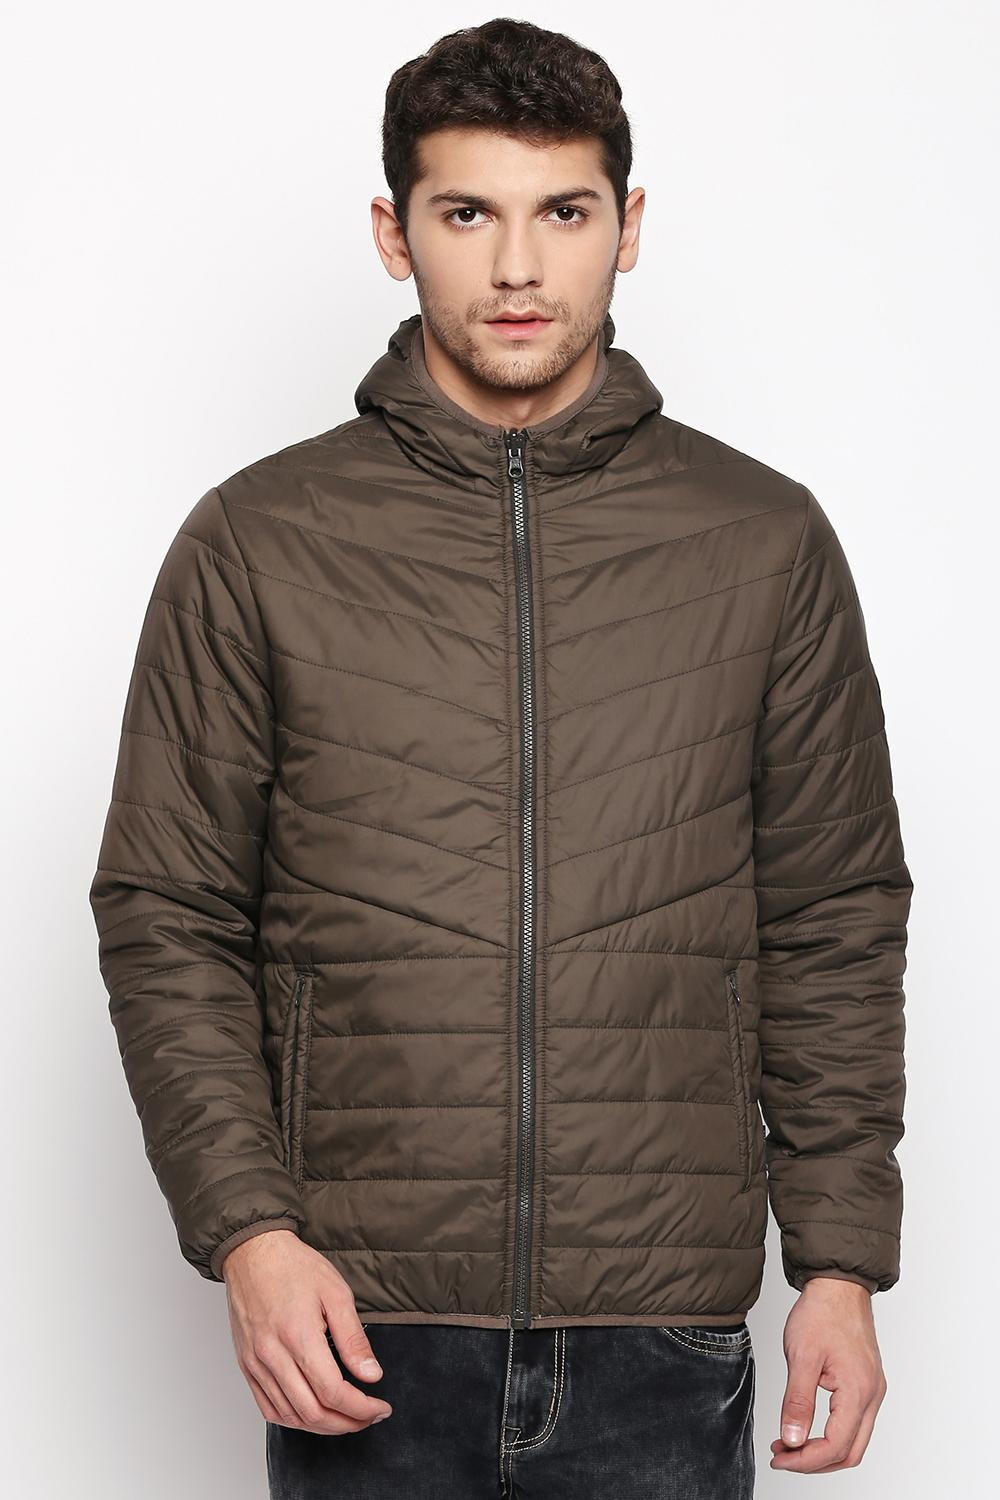 14e0c8658ff8 Shop Branded Jackets for Men Online in India at Pantaloons Online Store